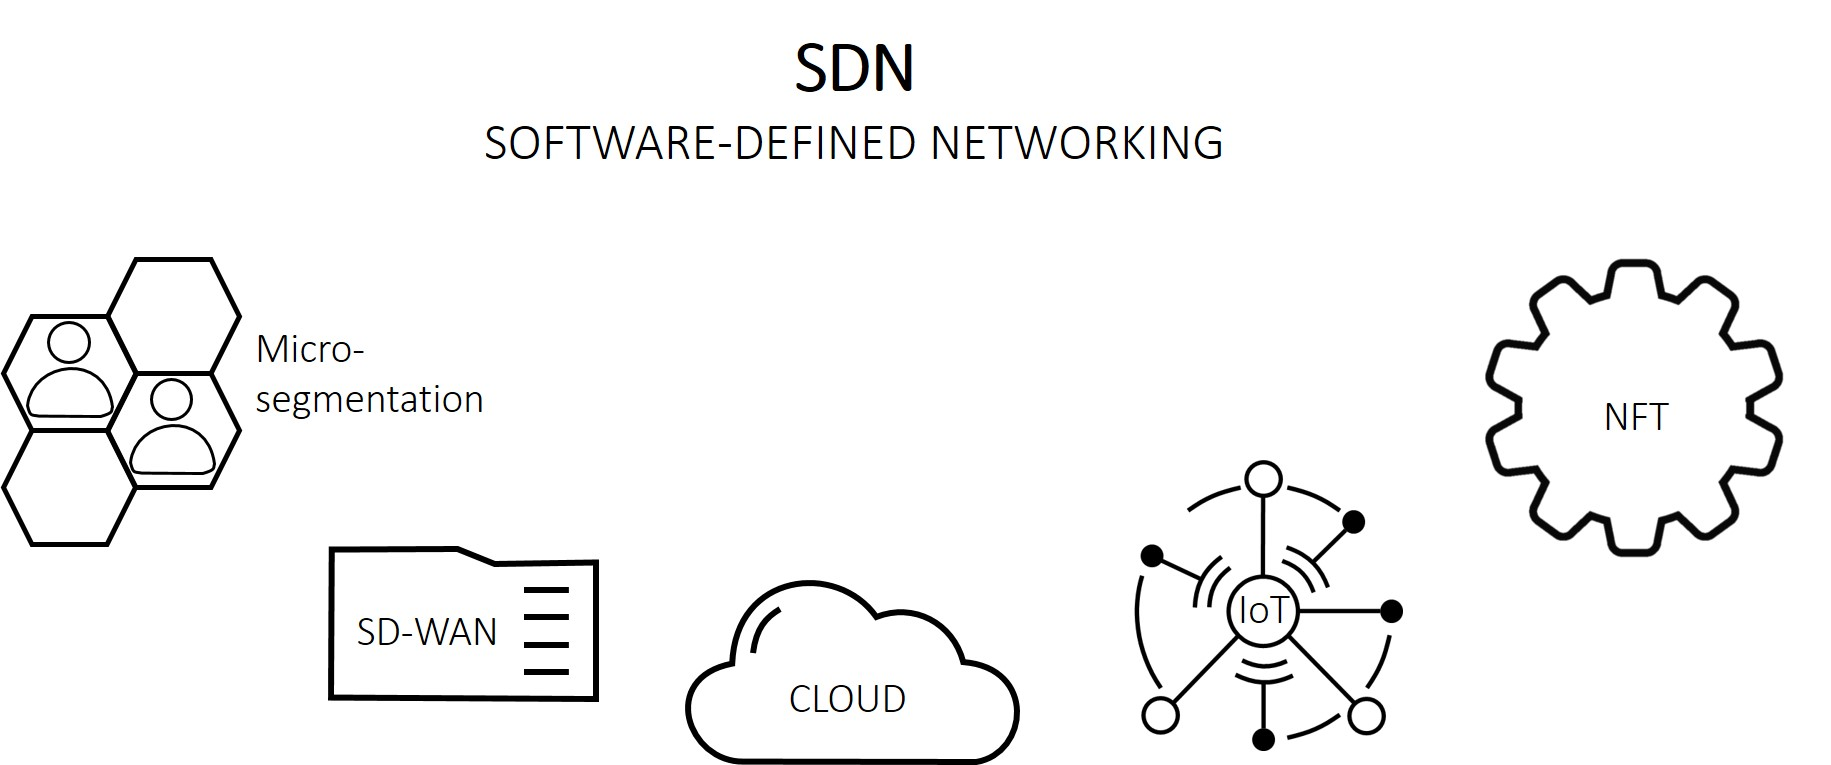 SDN, SDN versus Legacy – Analysis of architectural pros & cons